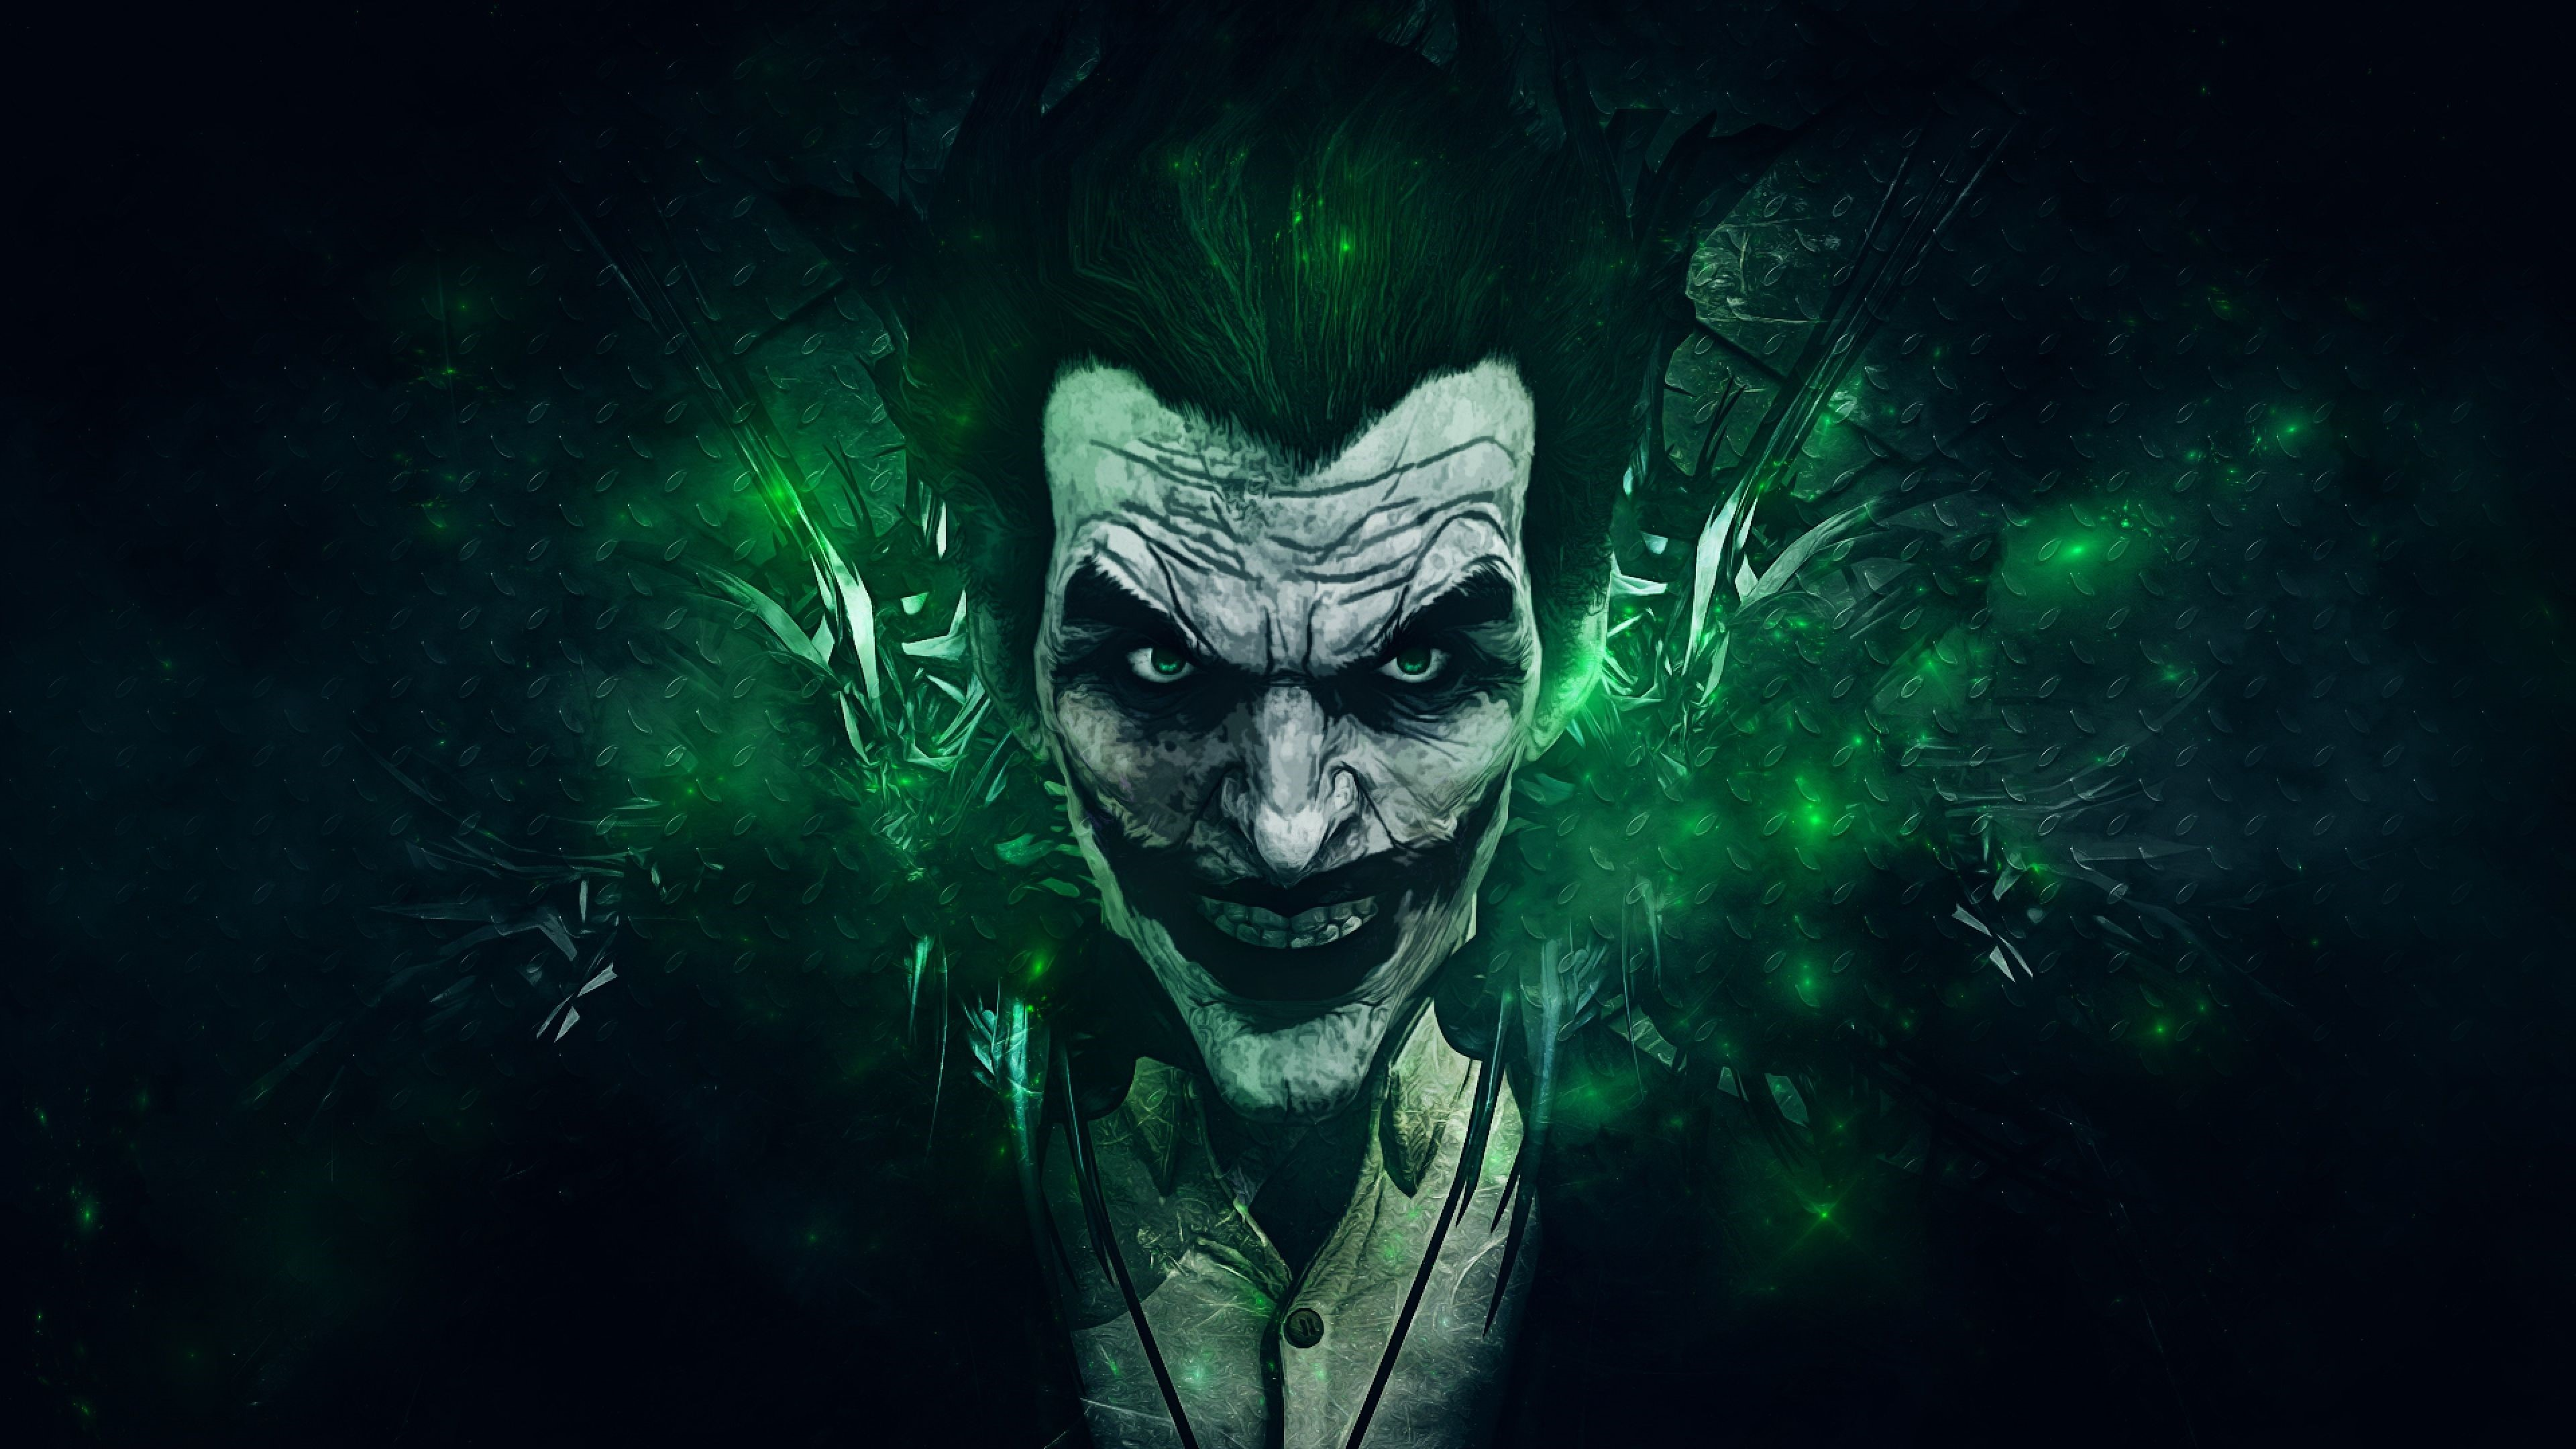 Joker 4k Wallpapers Wallpaper Download High Resolution 4k Wallpaper